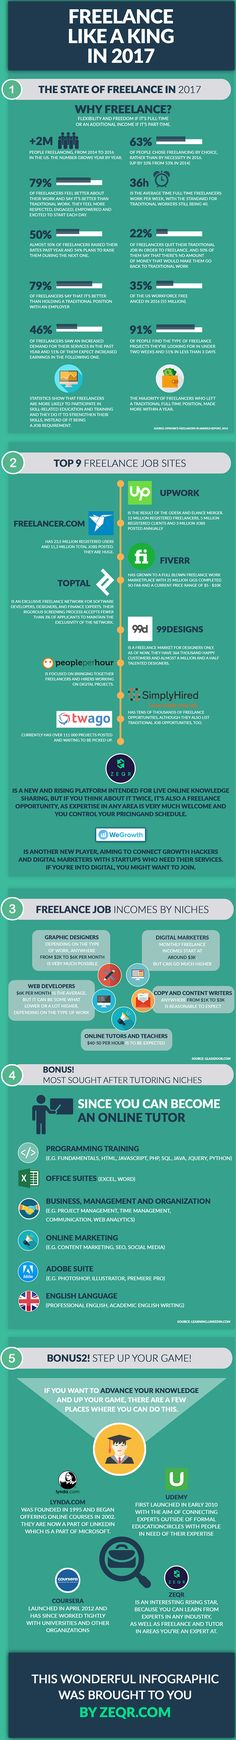 Freelancing is becoming a lucrative option for workers who want more control over their careers.